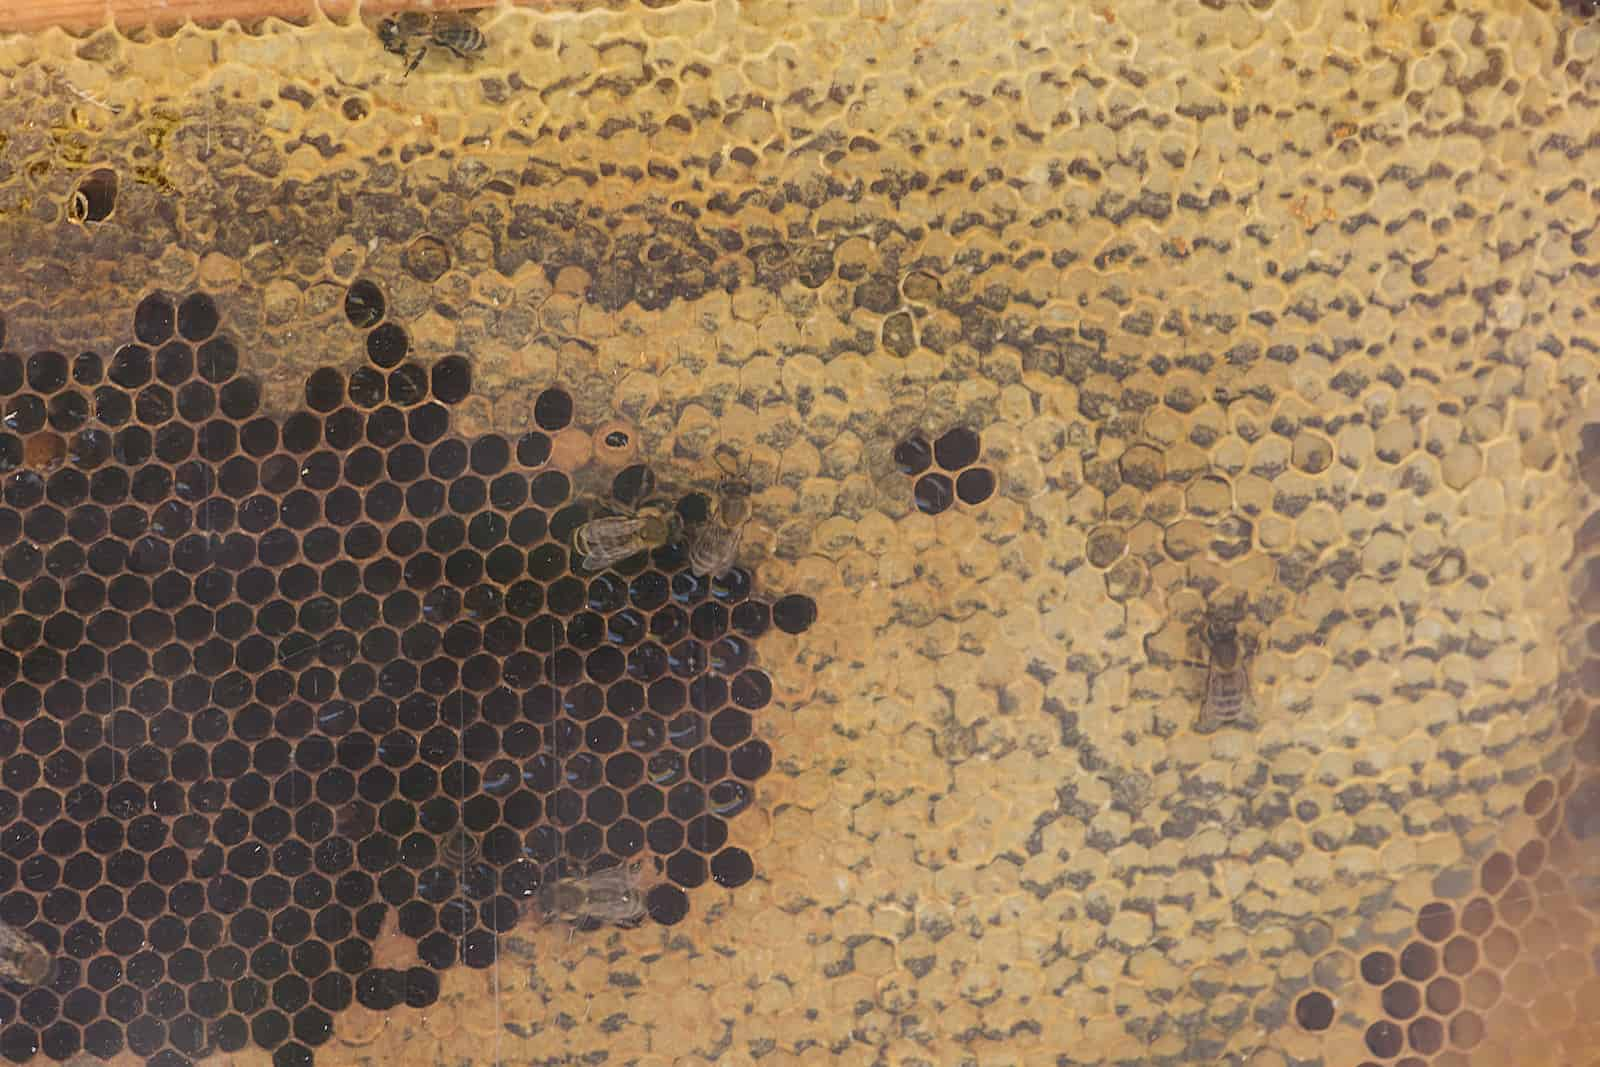 will bees clean out dead brood?